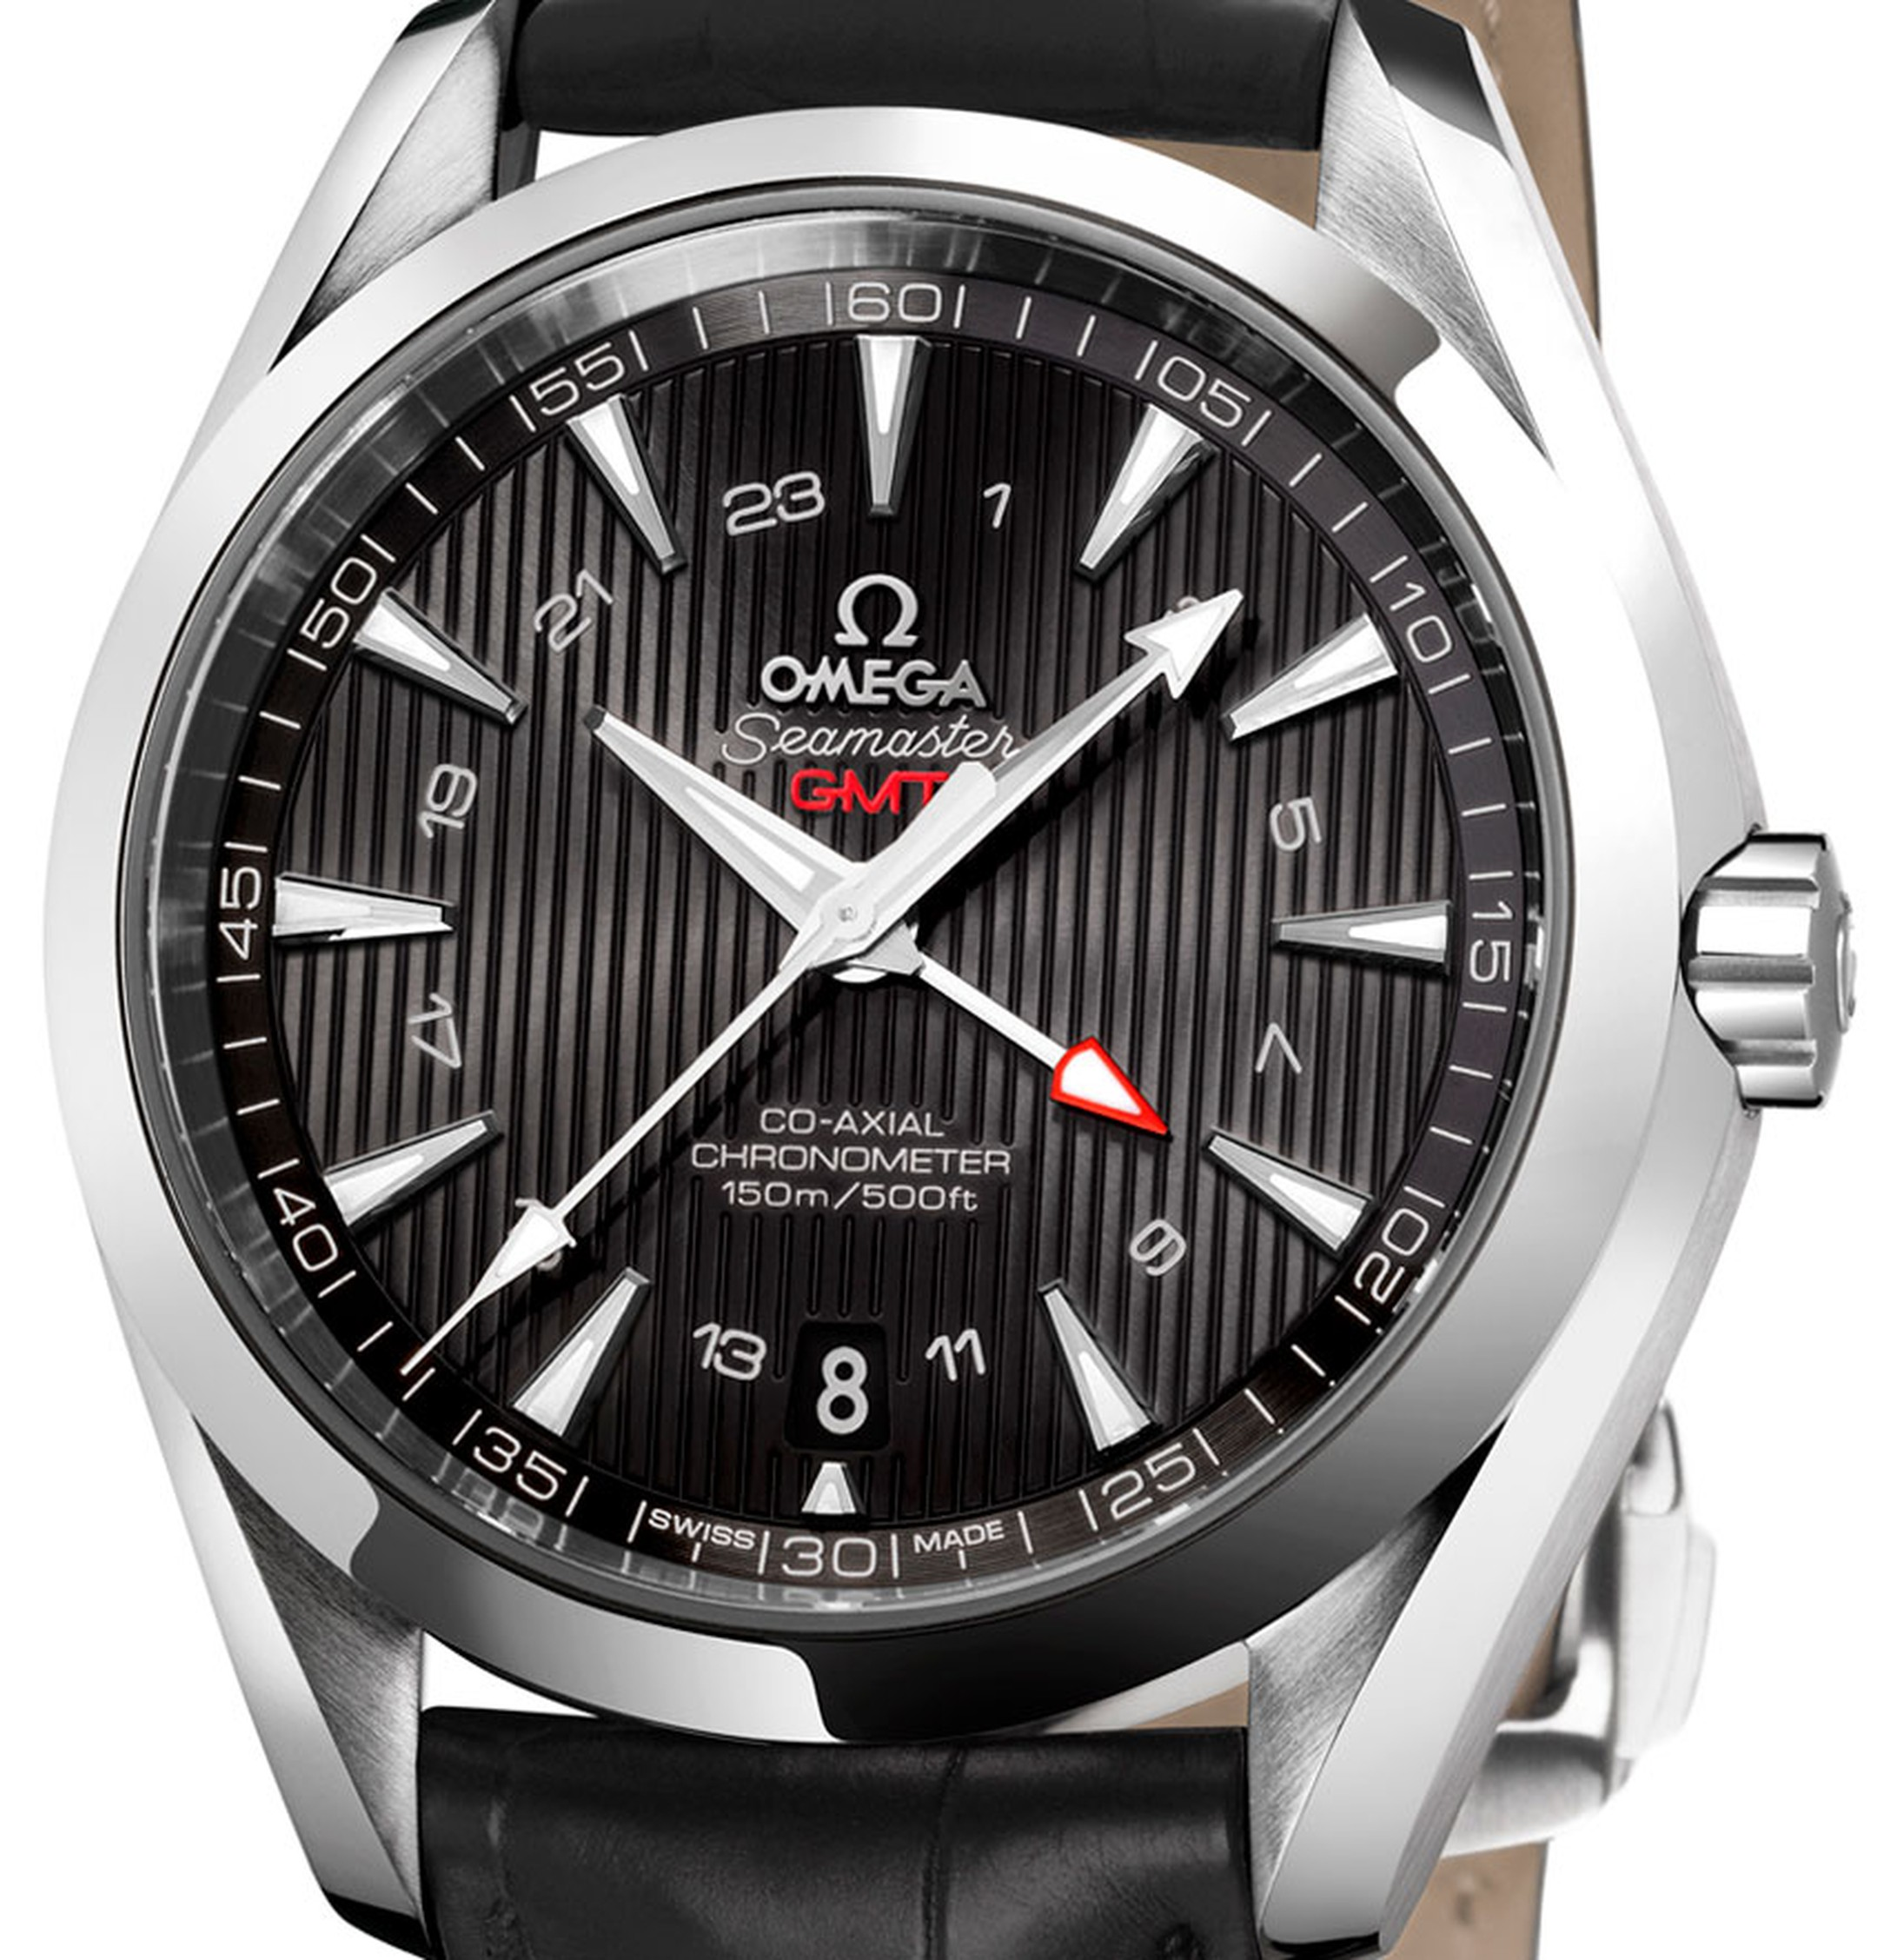 OMEGA-Seamaster-Aqua-Terra-GMT watch stainless steel and black leather strap POA